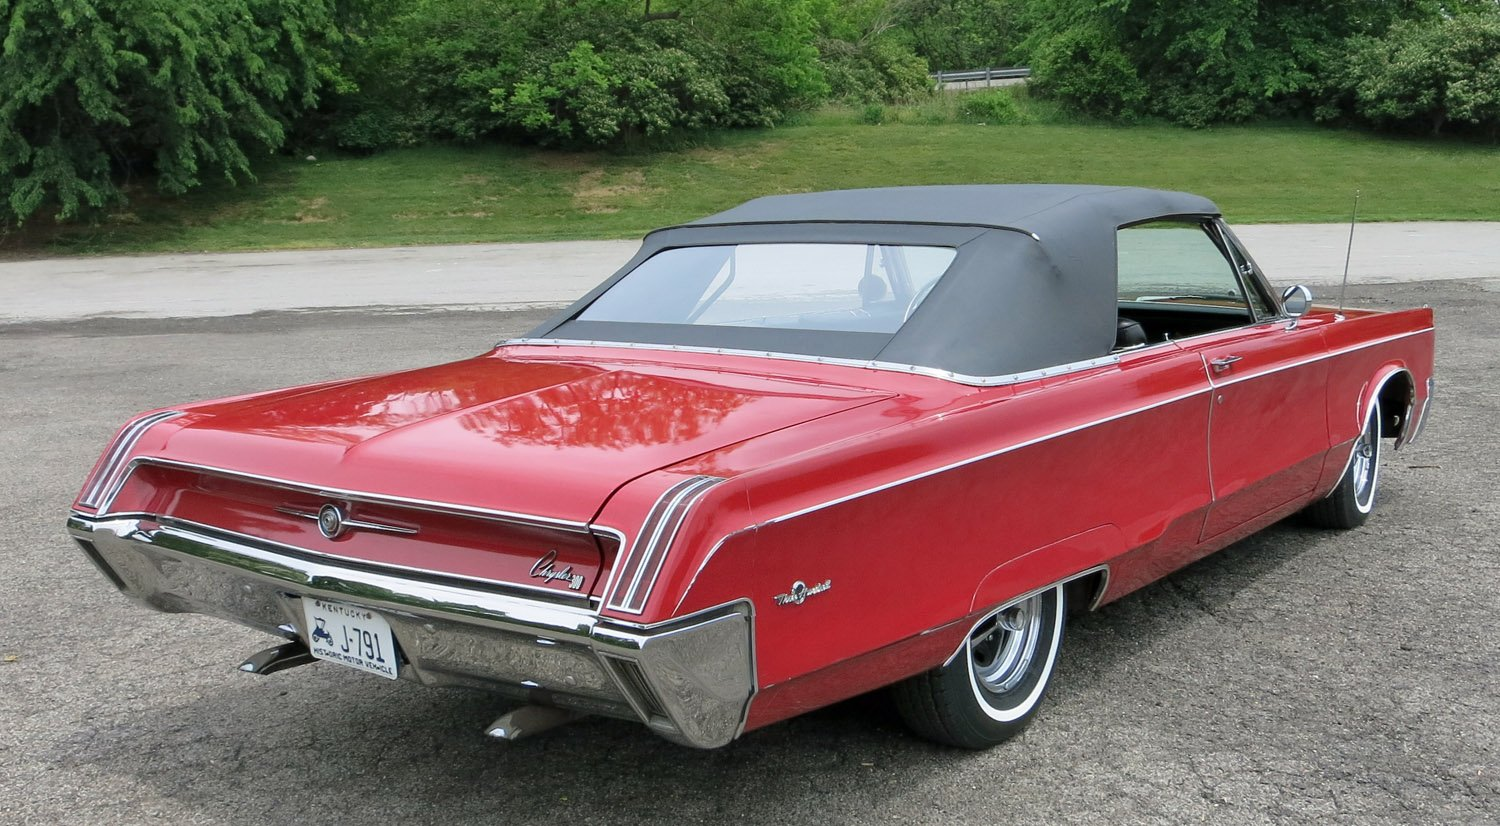 1967 Chrysler 300